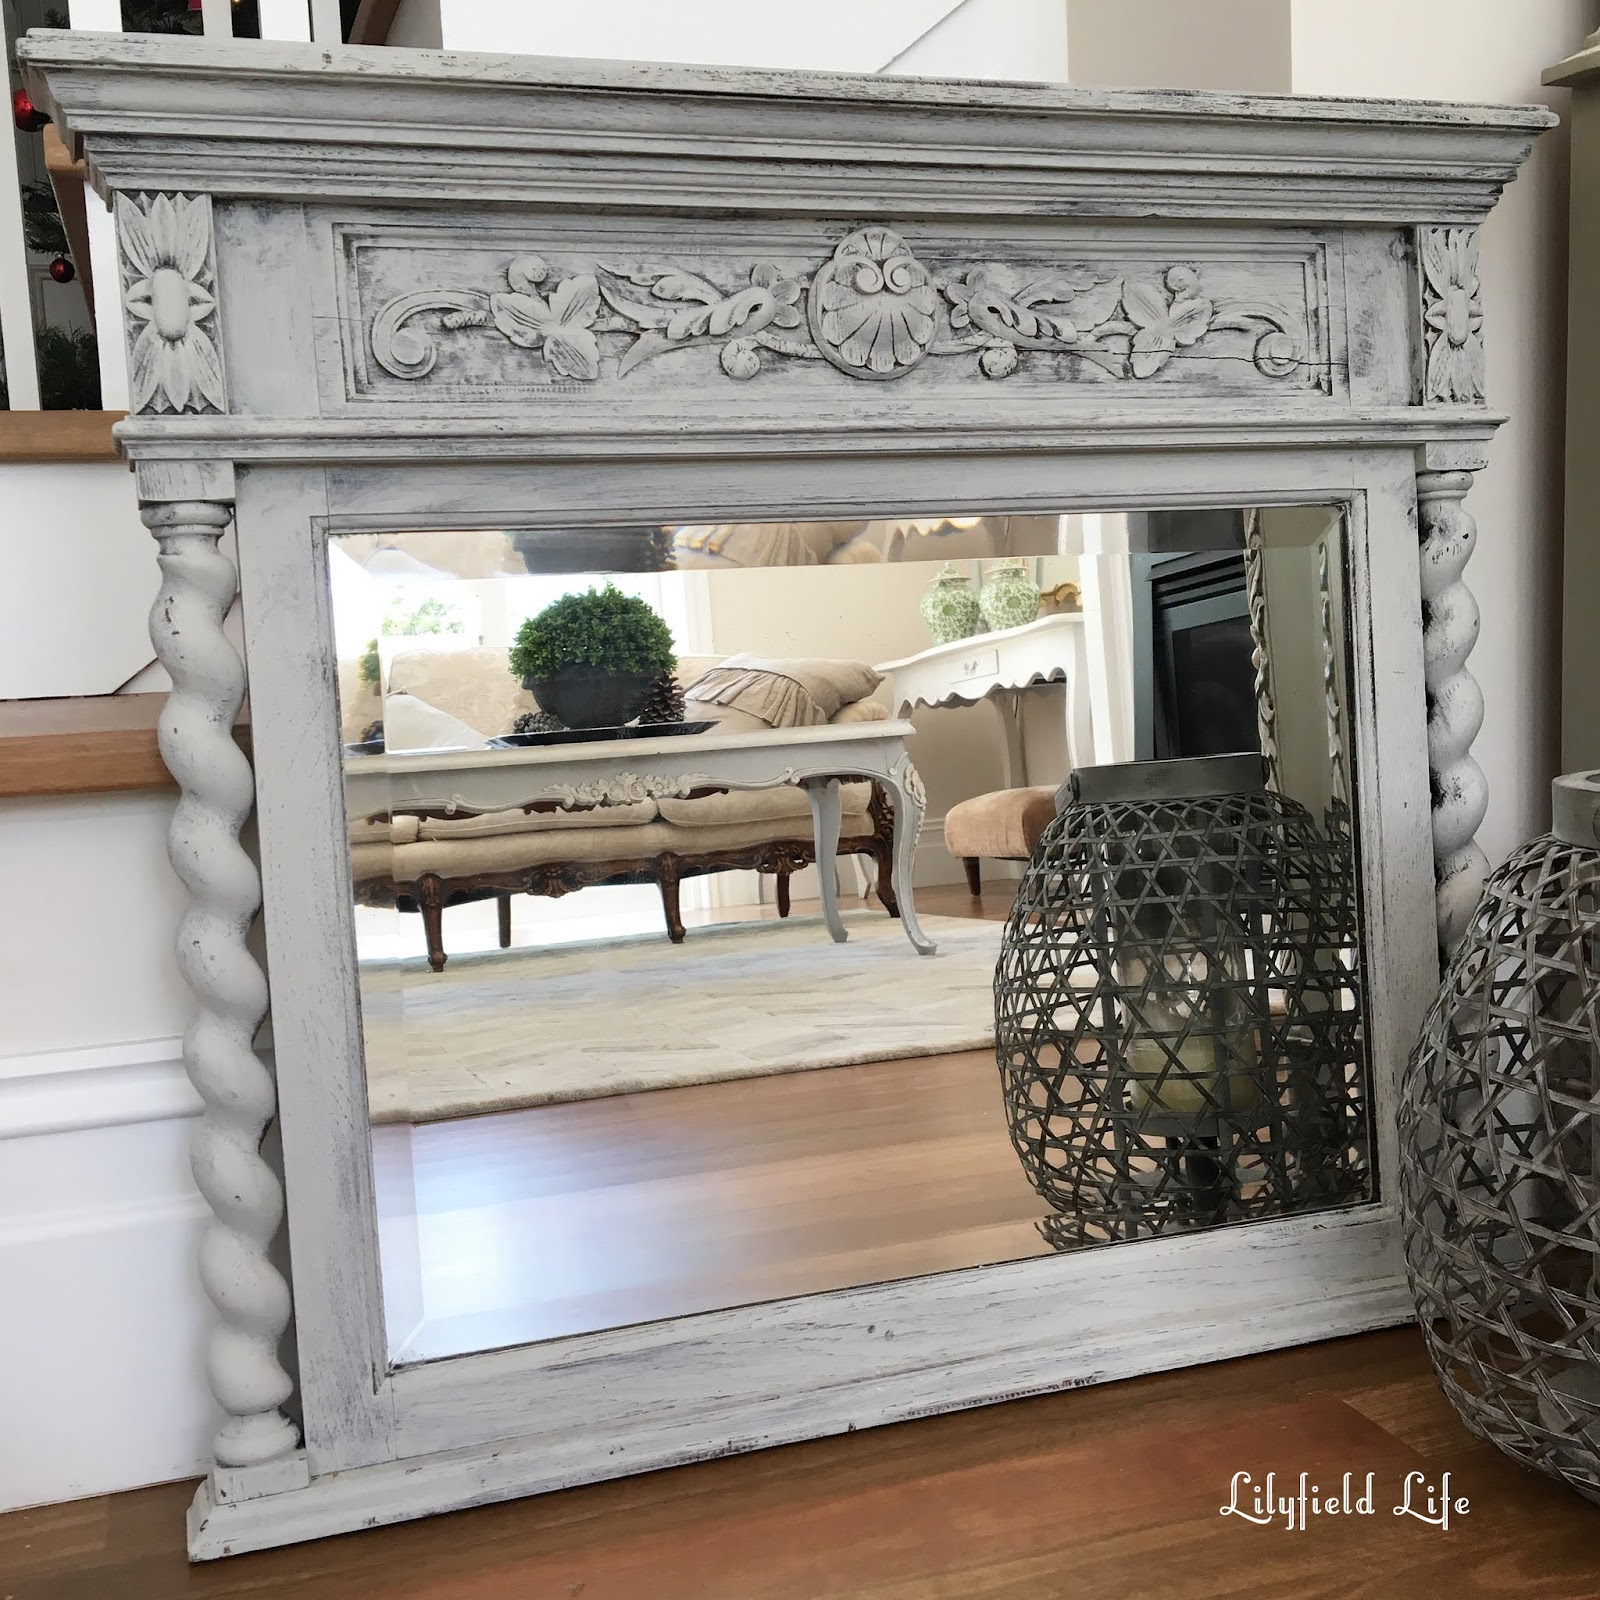 Lilyfield Life: Gorgeous Painted Vintage Mirrors